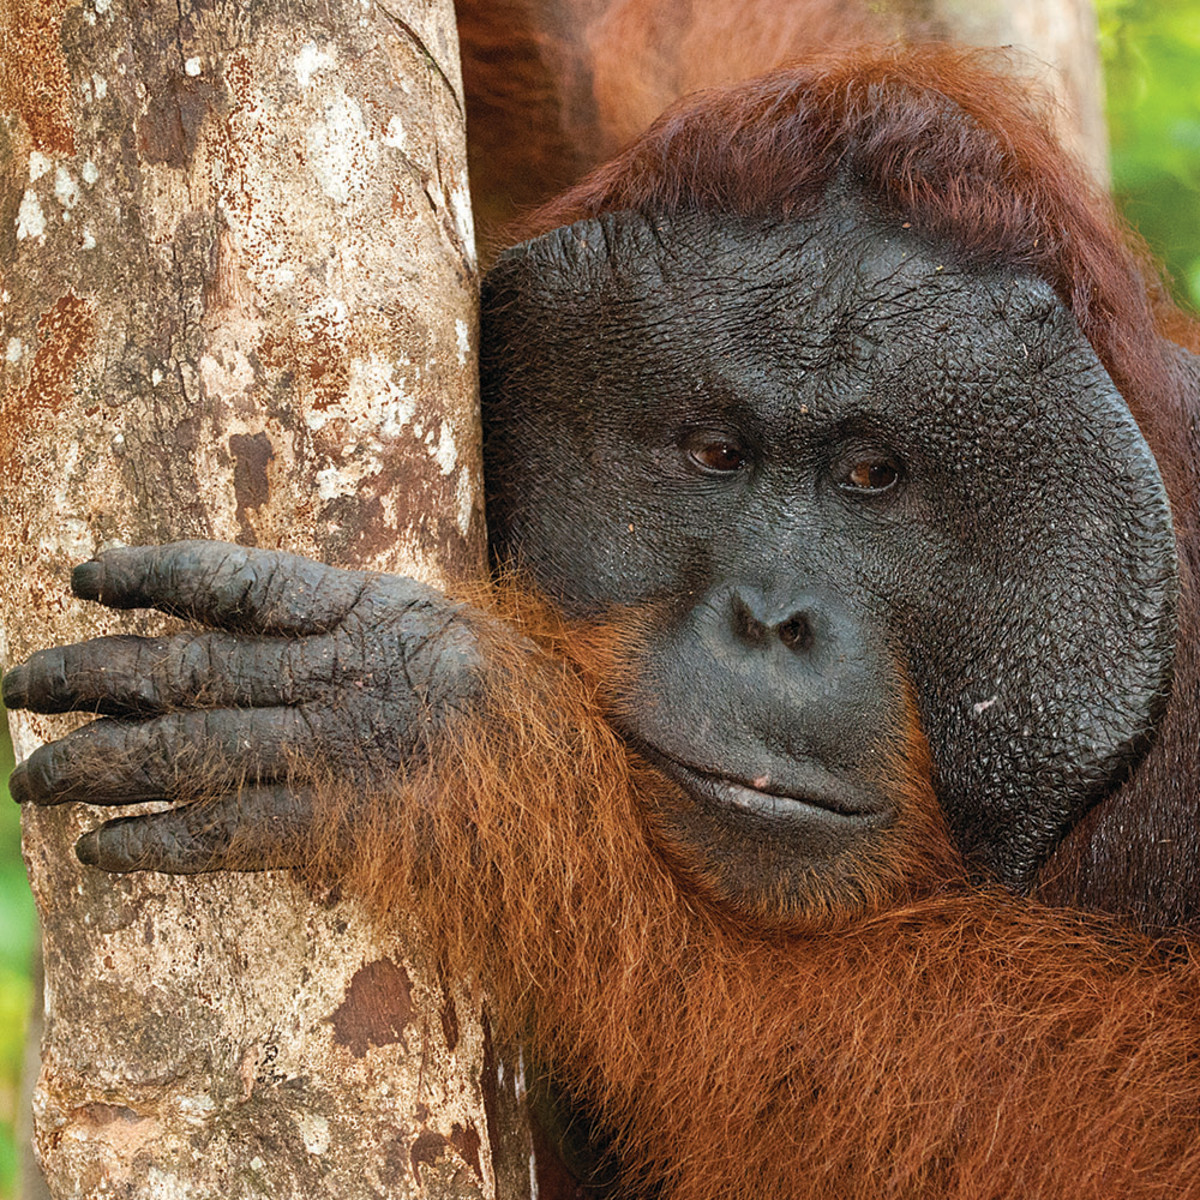 A distant cousin, the orangutang.